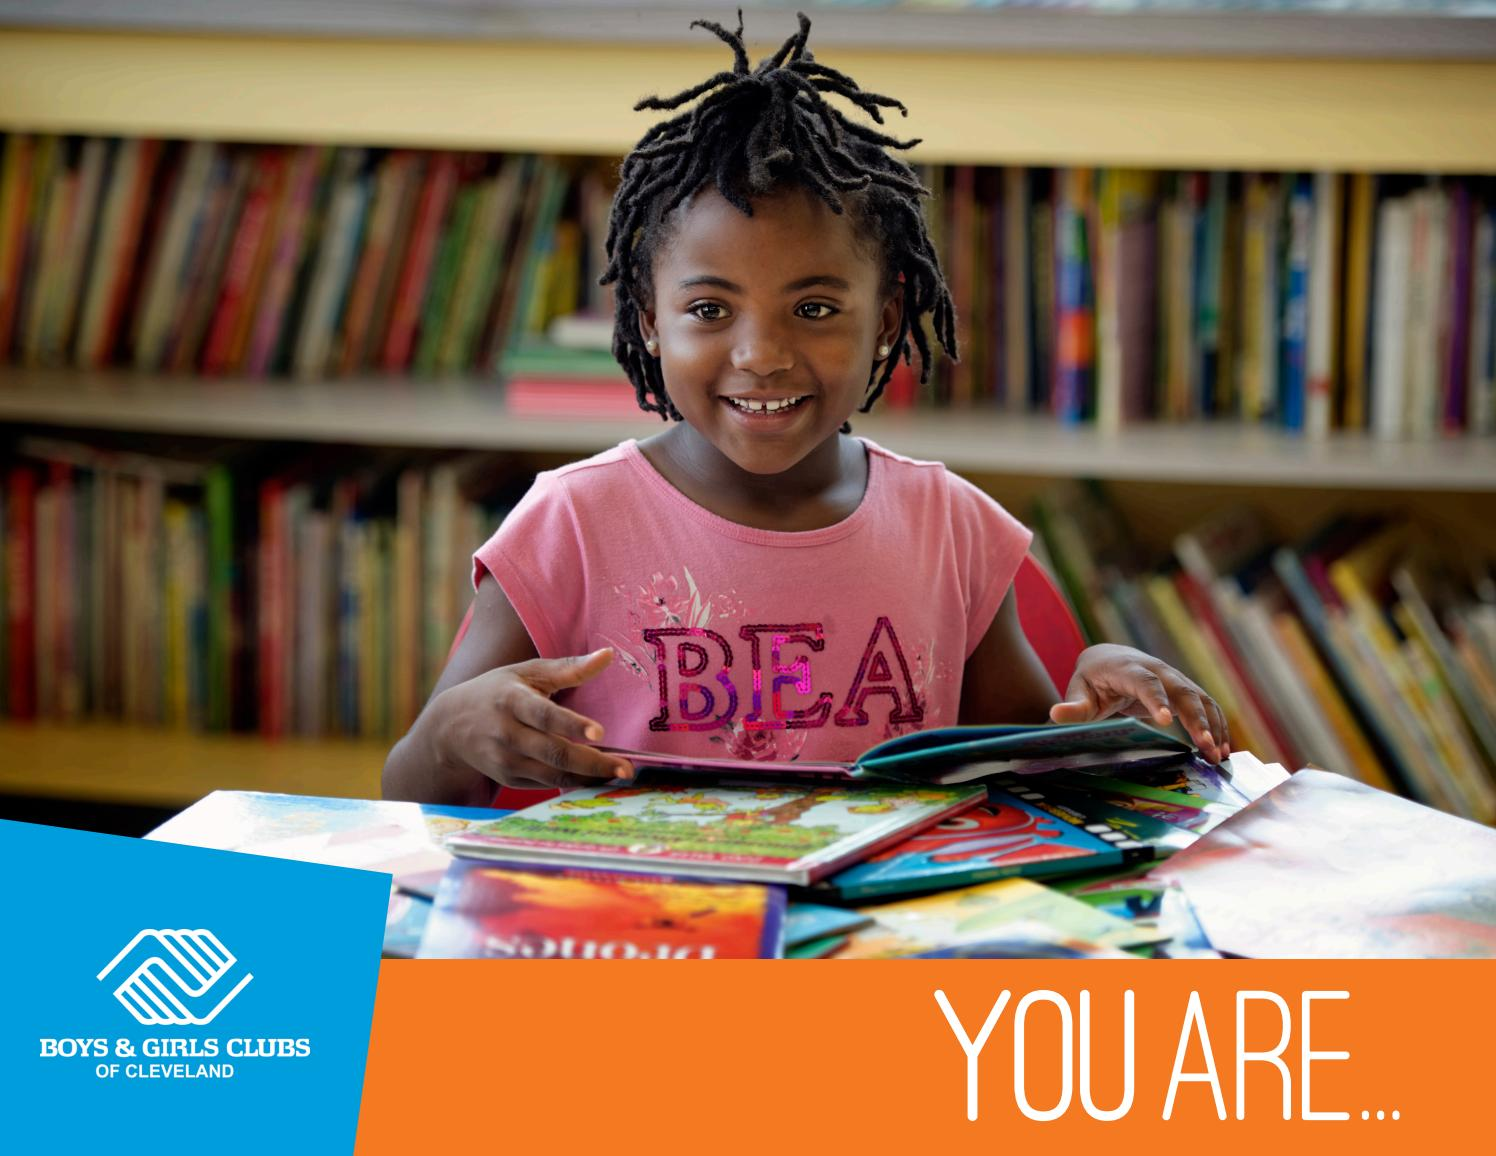 Ina Mae Spivey Amazing 2012-2013 boys & girls clubs of indianapolis annual report